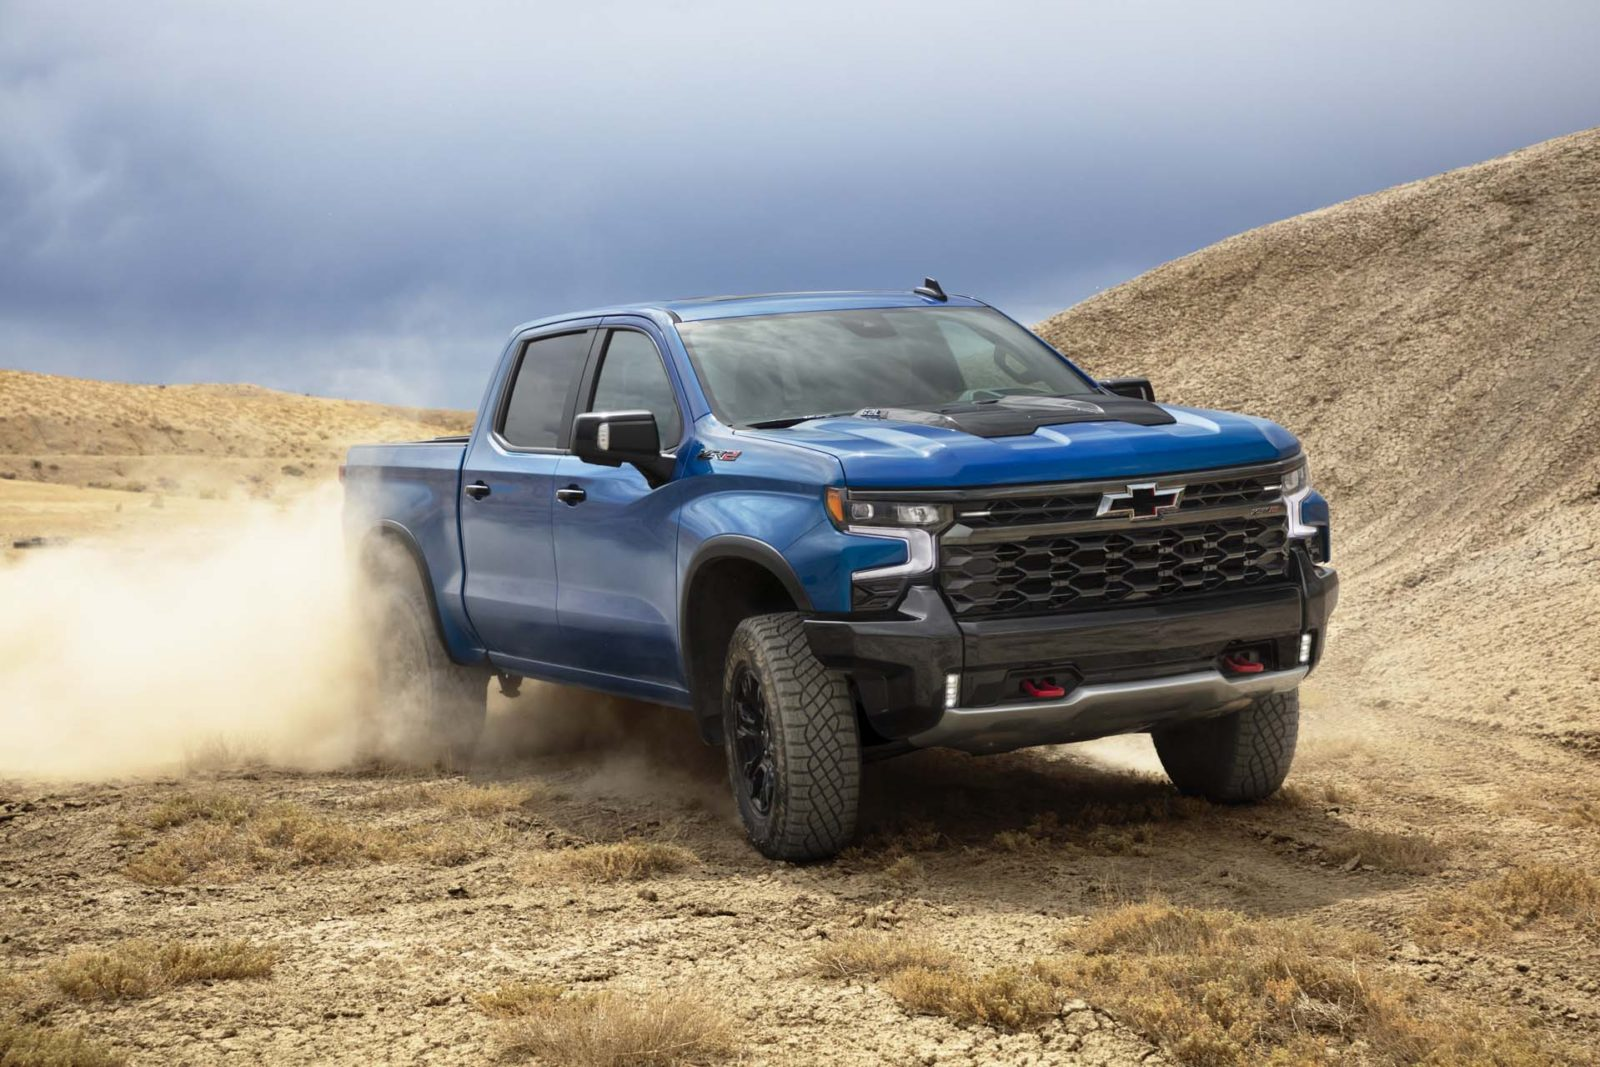 2022-chevy-silverado-updated,-2022-lexus-is-500-tracked,-outlander-phev-revisited:-what's-new-@-the-car-connection